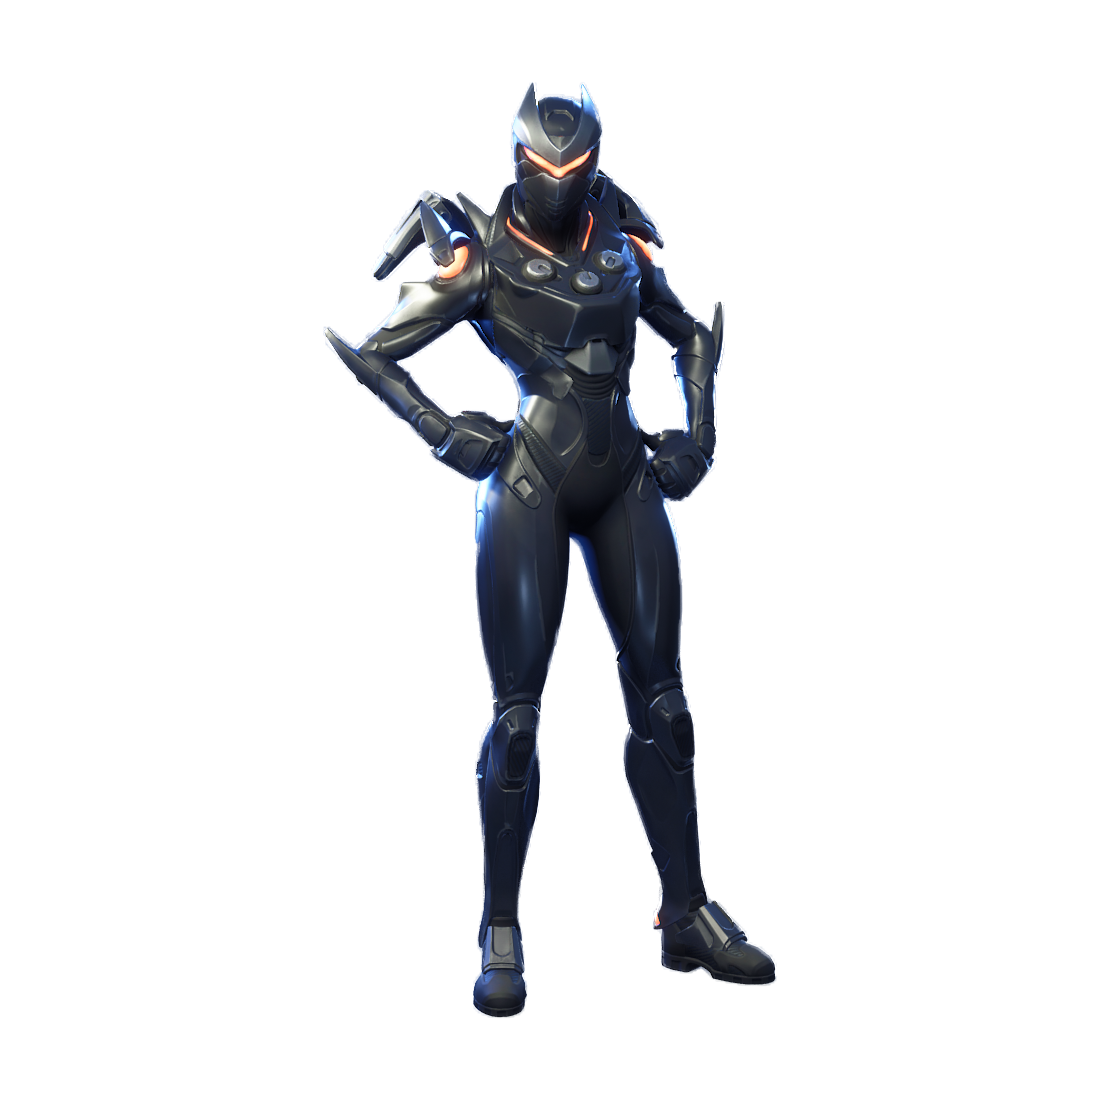 Fortnite png character. Fnbr co cosmetics report